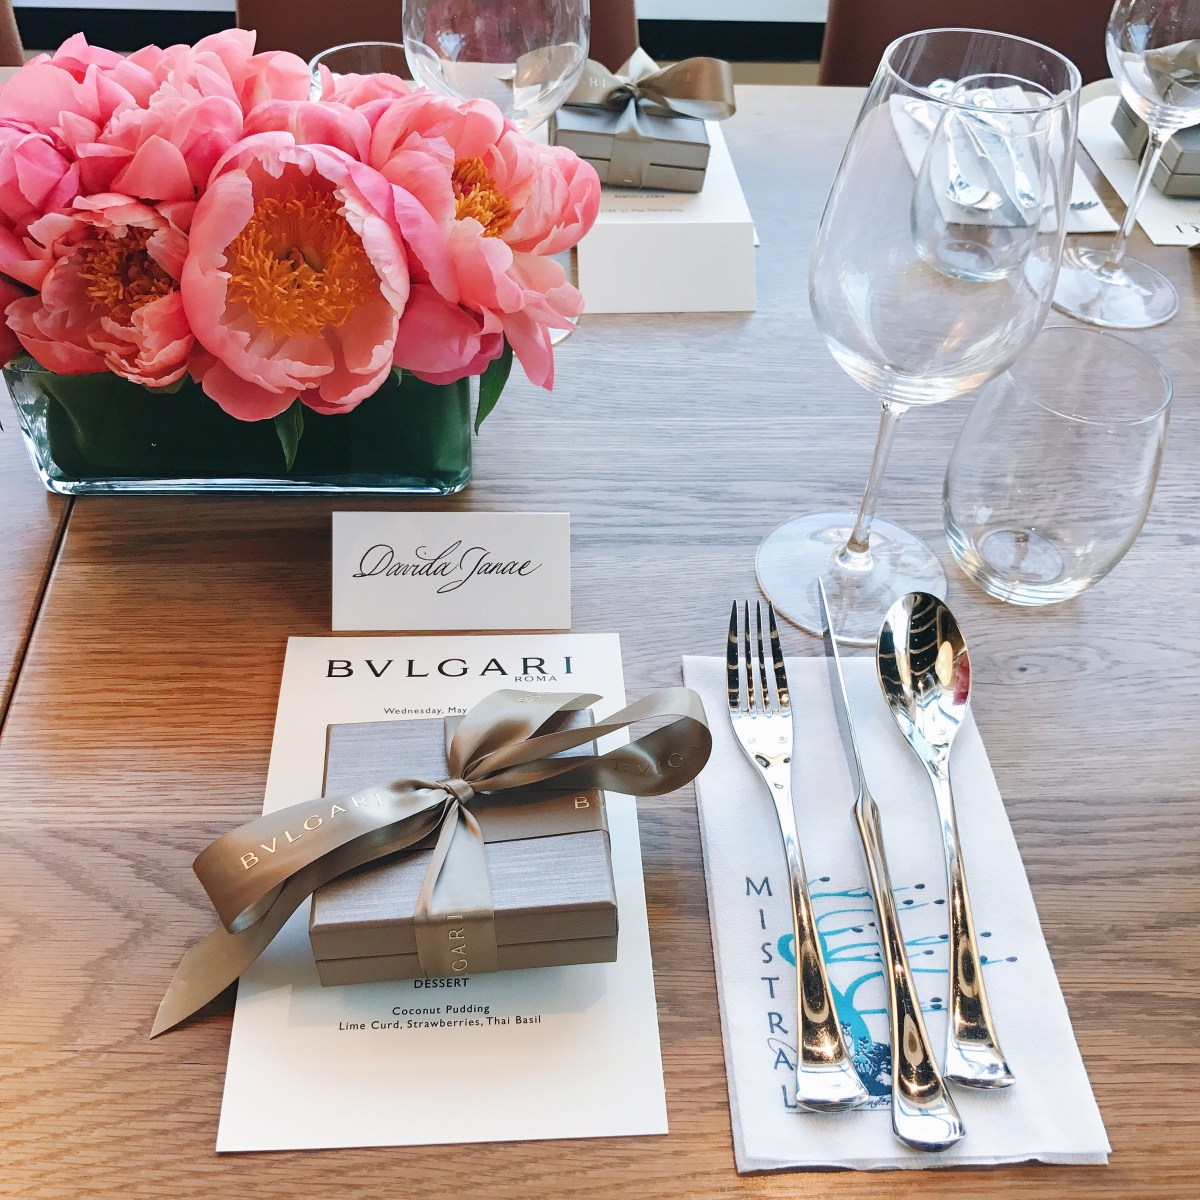 Bvlgari Luncheon